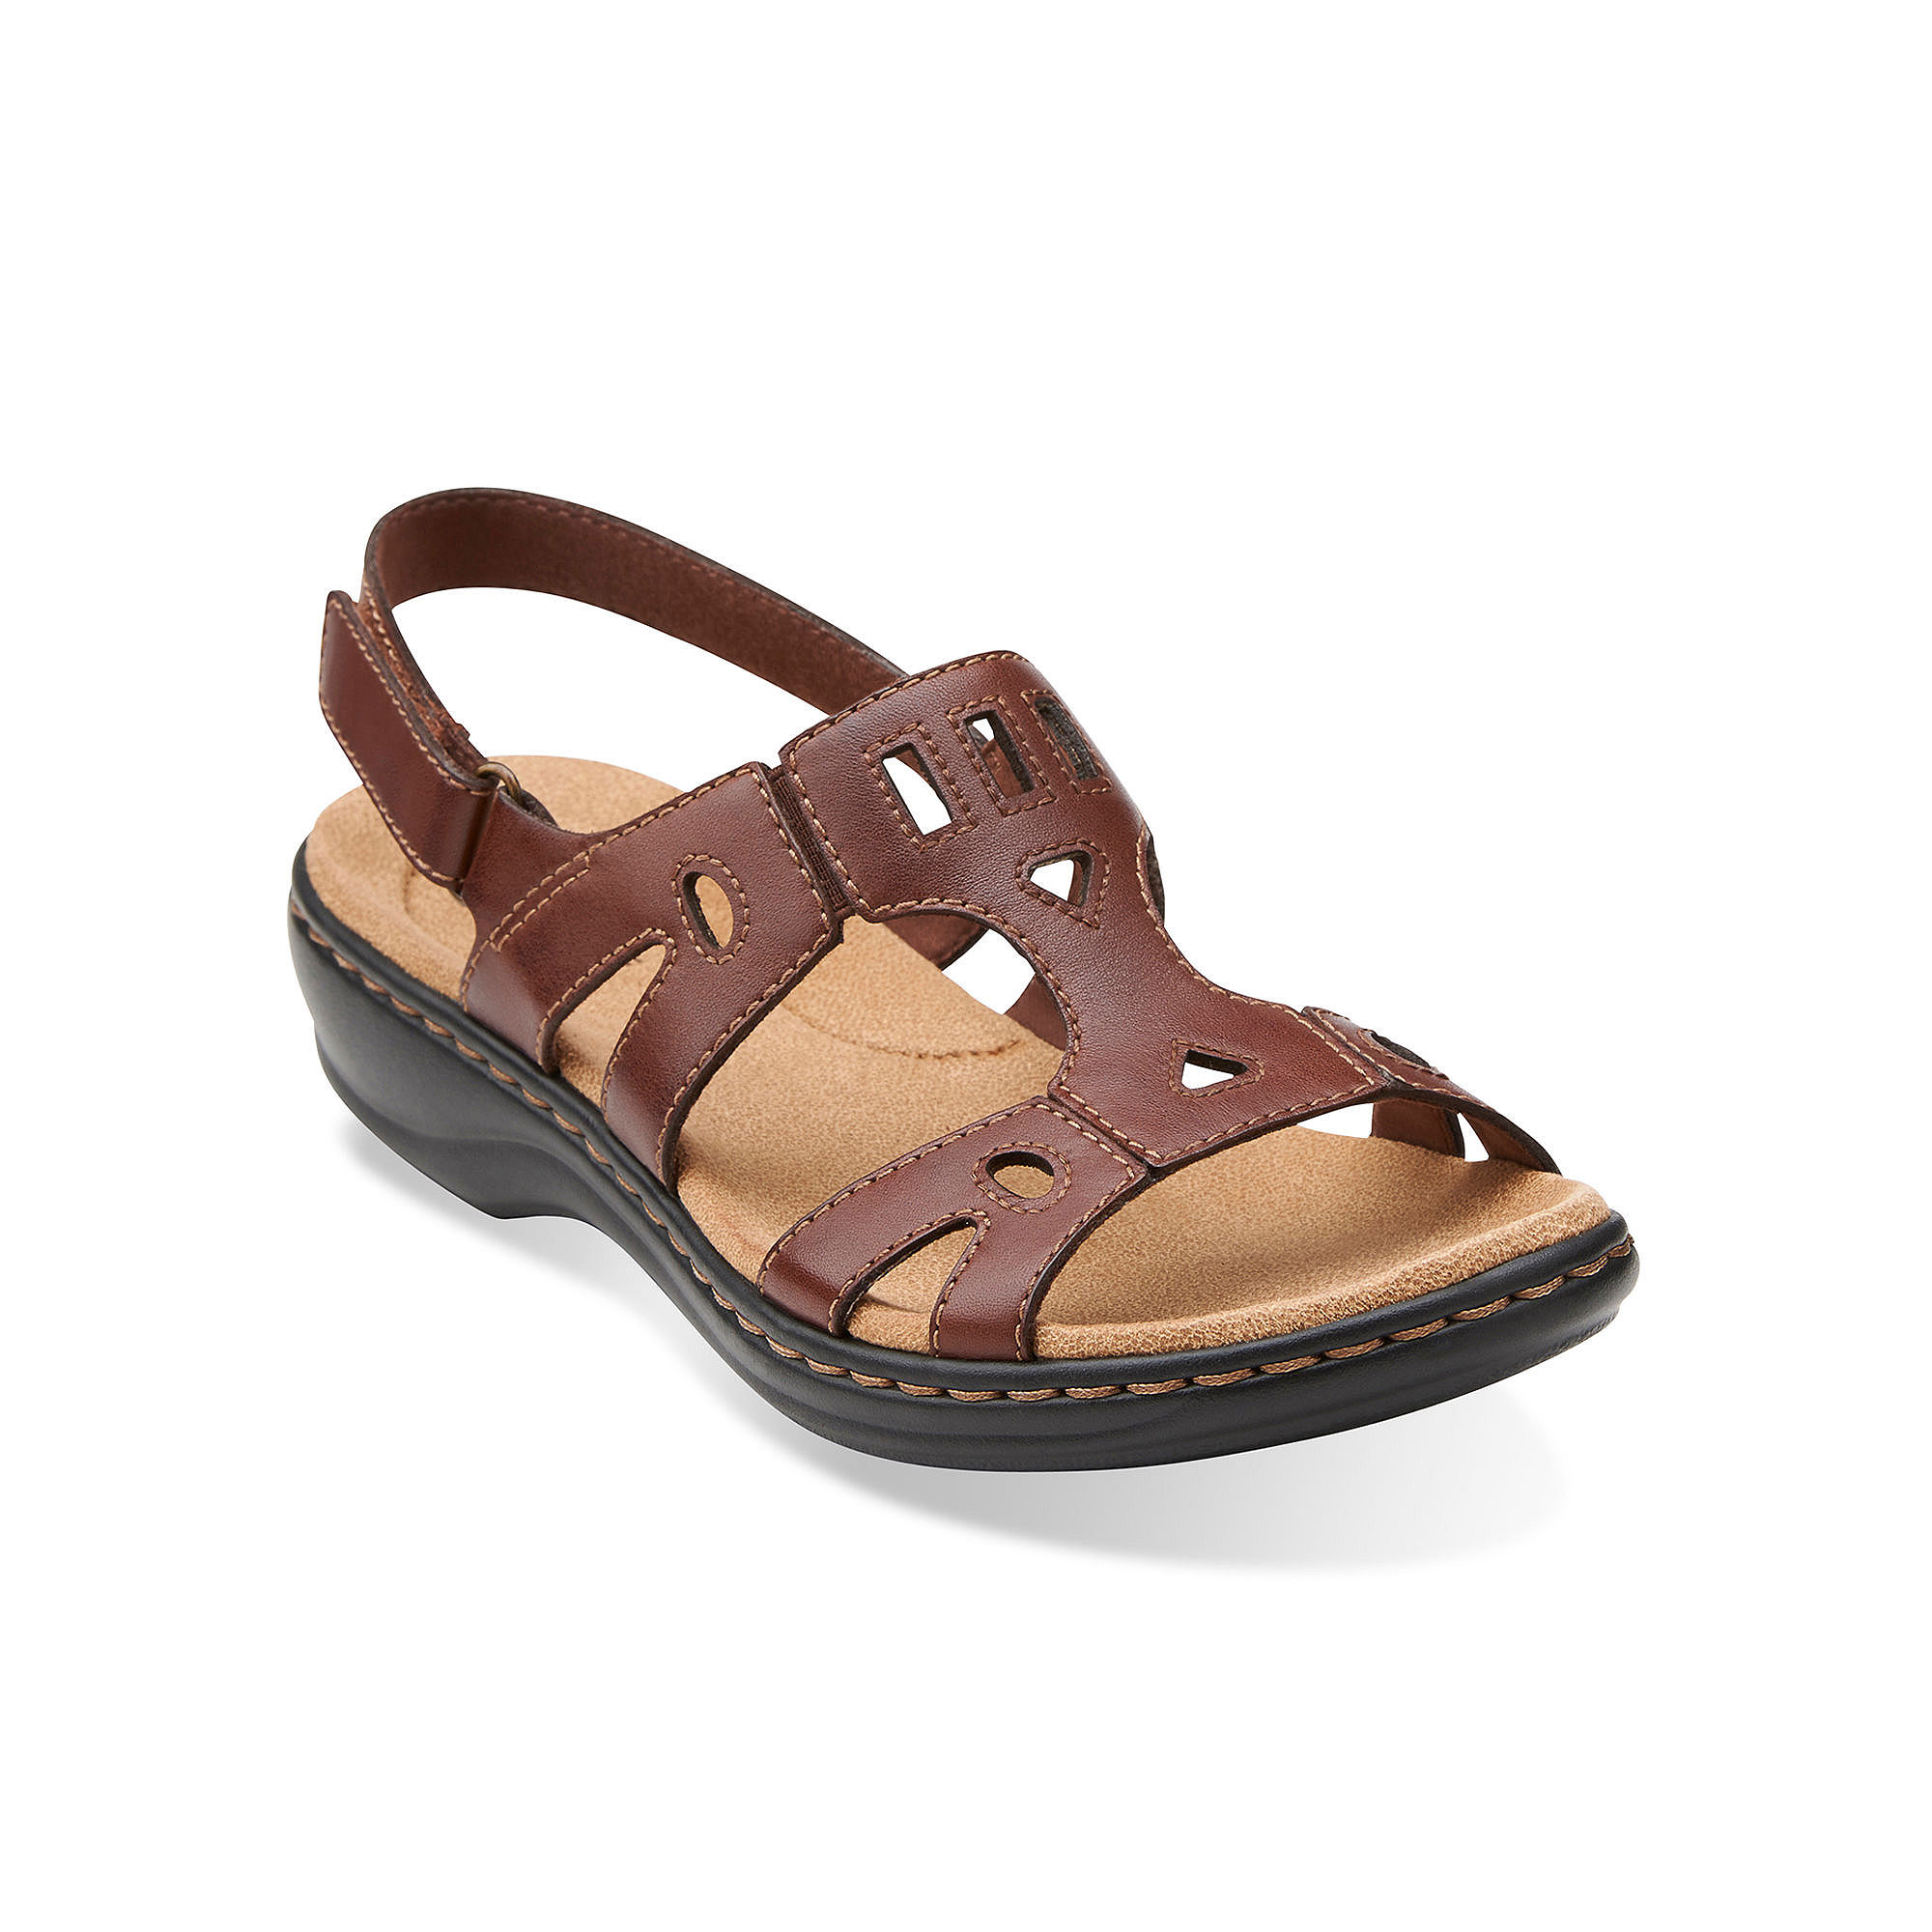 b7d4969ca0c1 UPC 889303910823 product image for Clarks Leisa Annual Leather Sandals